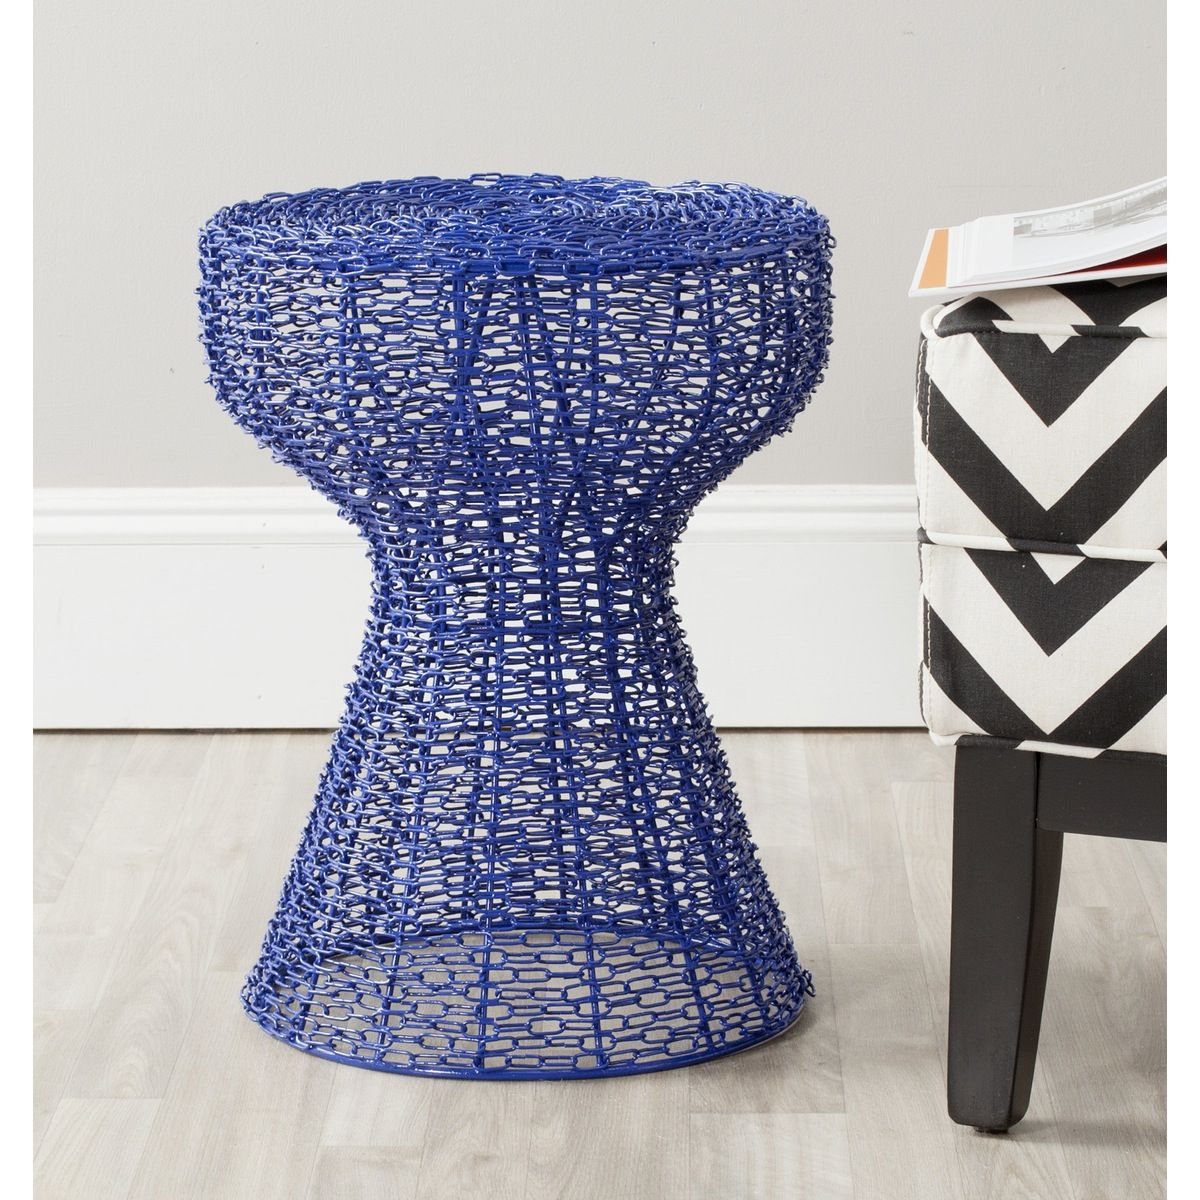 The Tabitha iron chain stool is your link to a subtle modern update in the casual interior spaces. The industrial-inspired pattern of chain-link is softened by a black epoxy finish, ensuring that it adds just a whisper of urban chic to any decor.